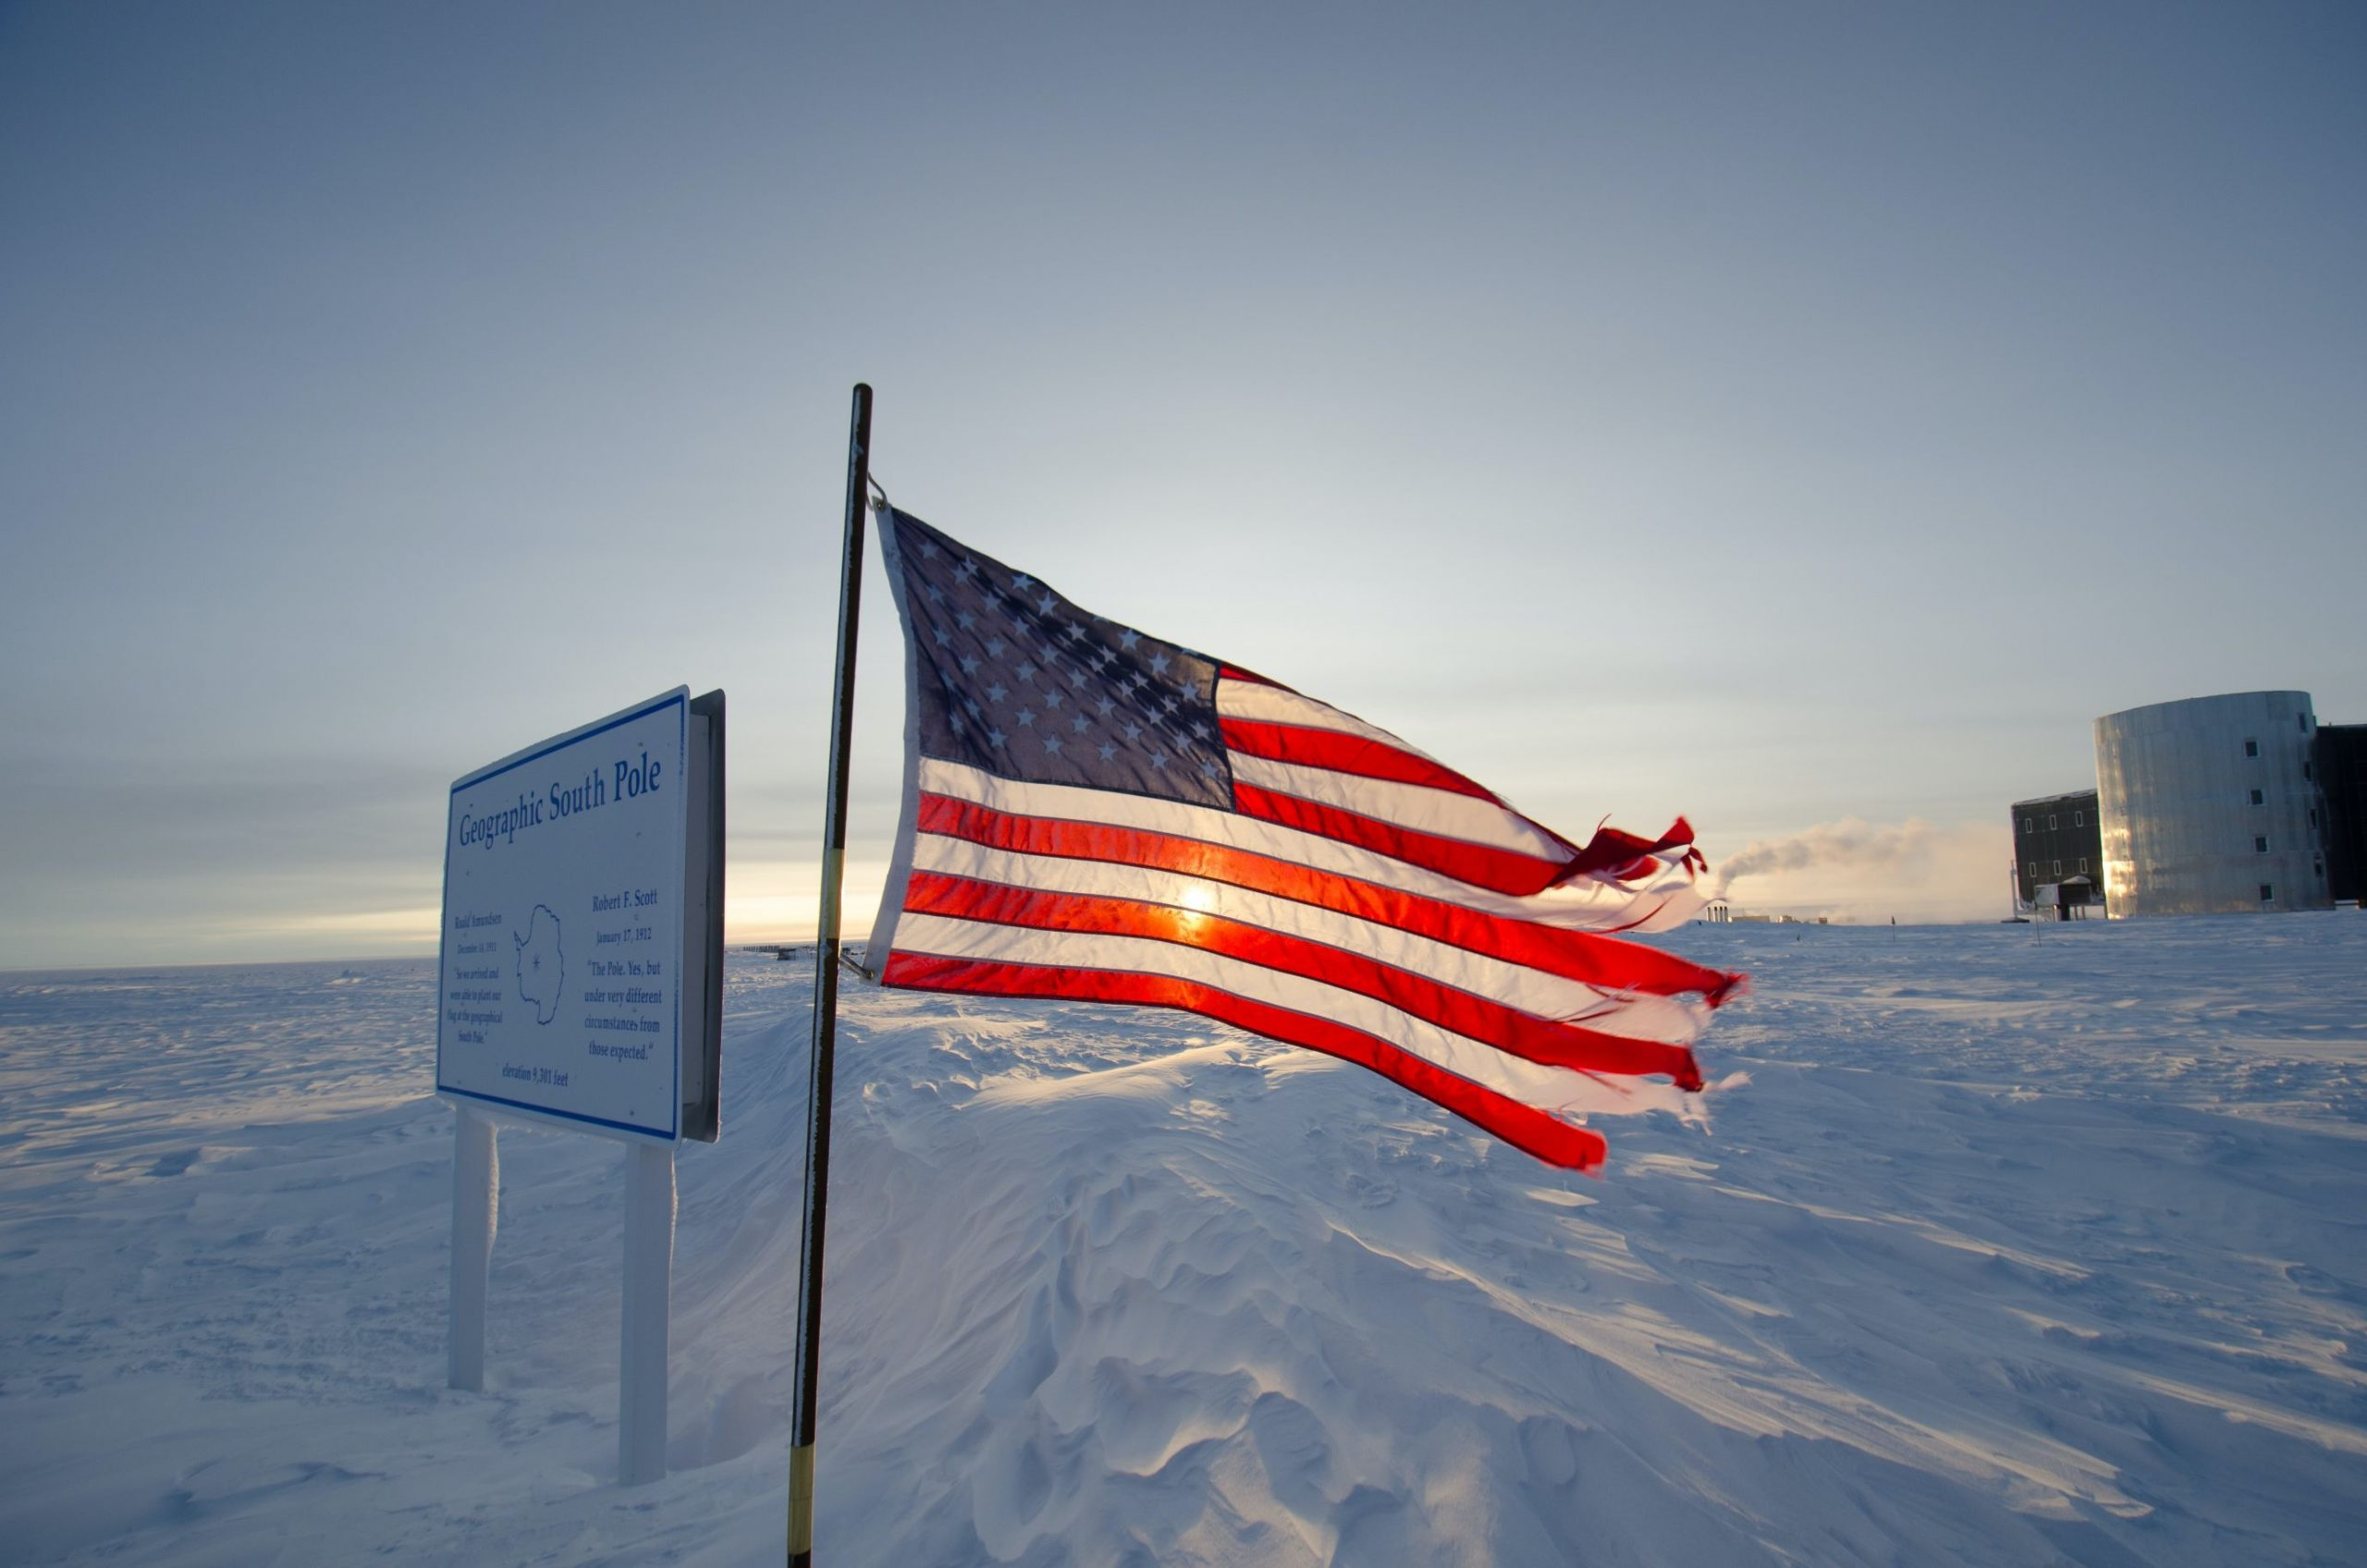 American flag flying at the South Pole station in Antarctica